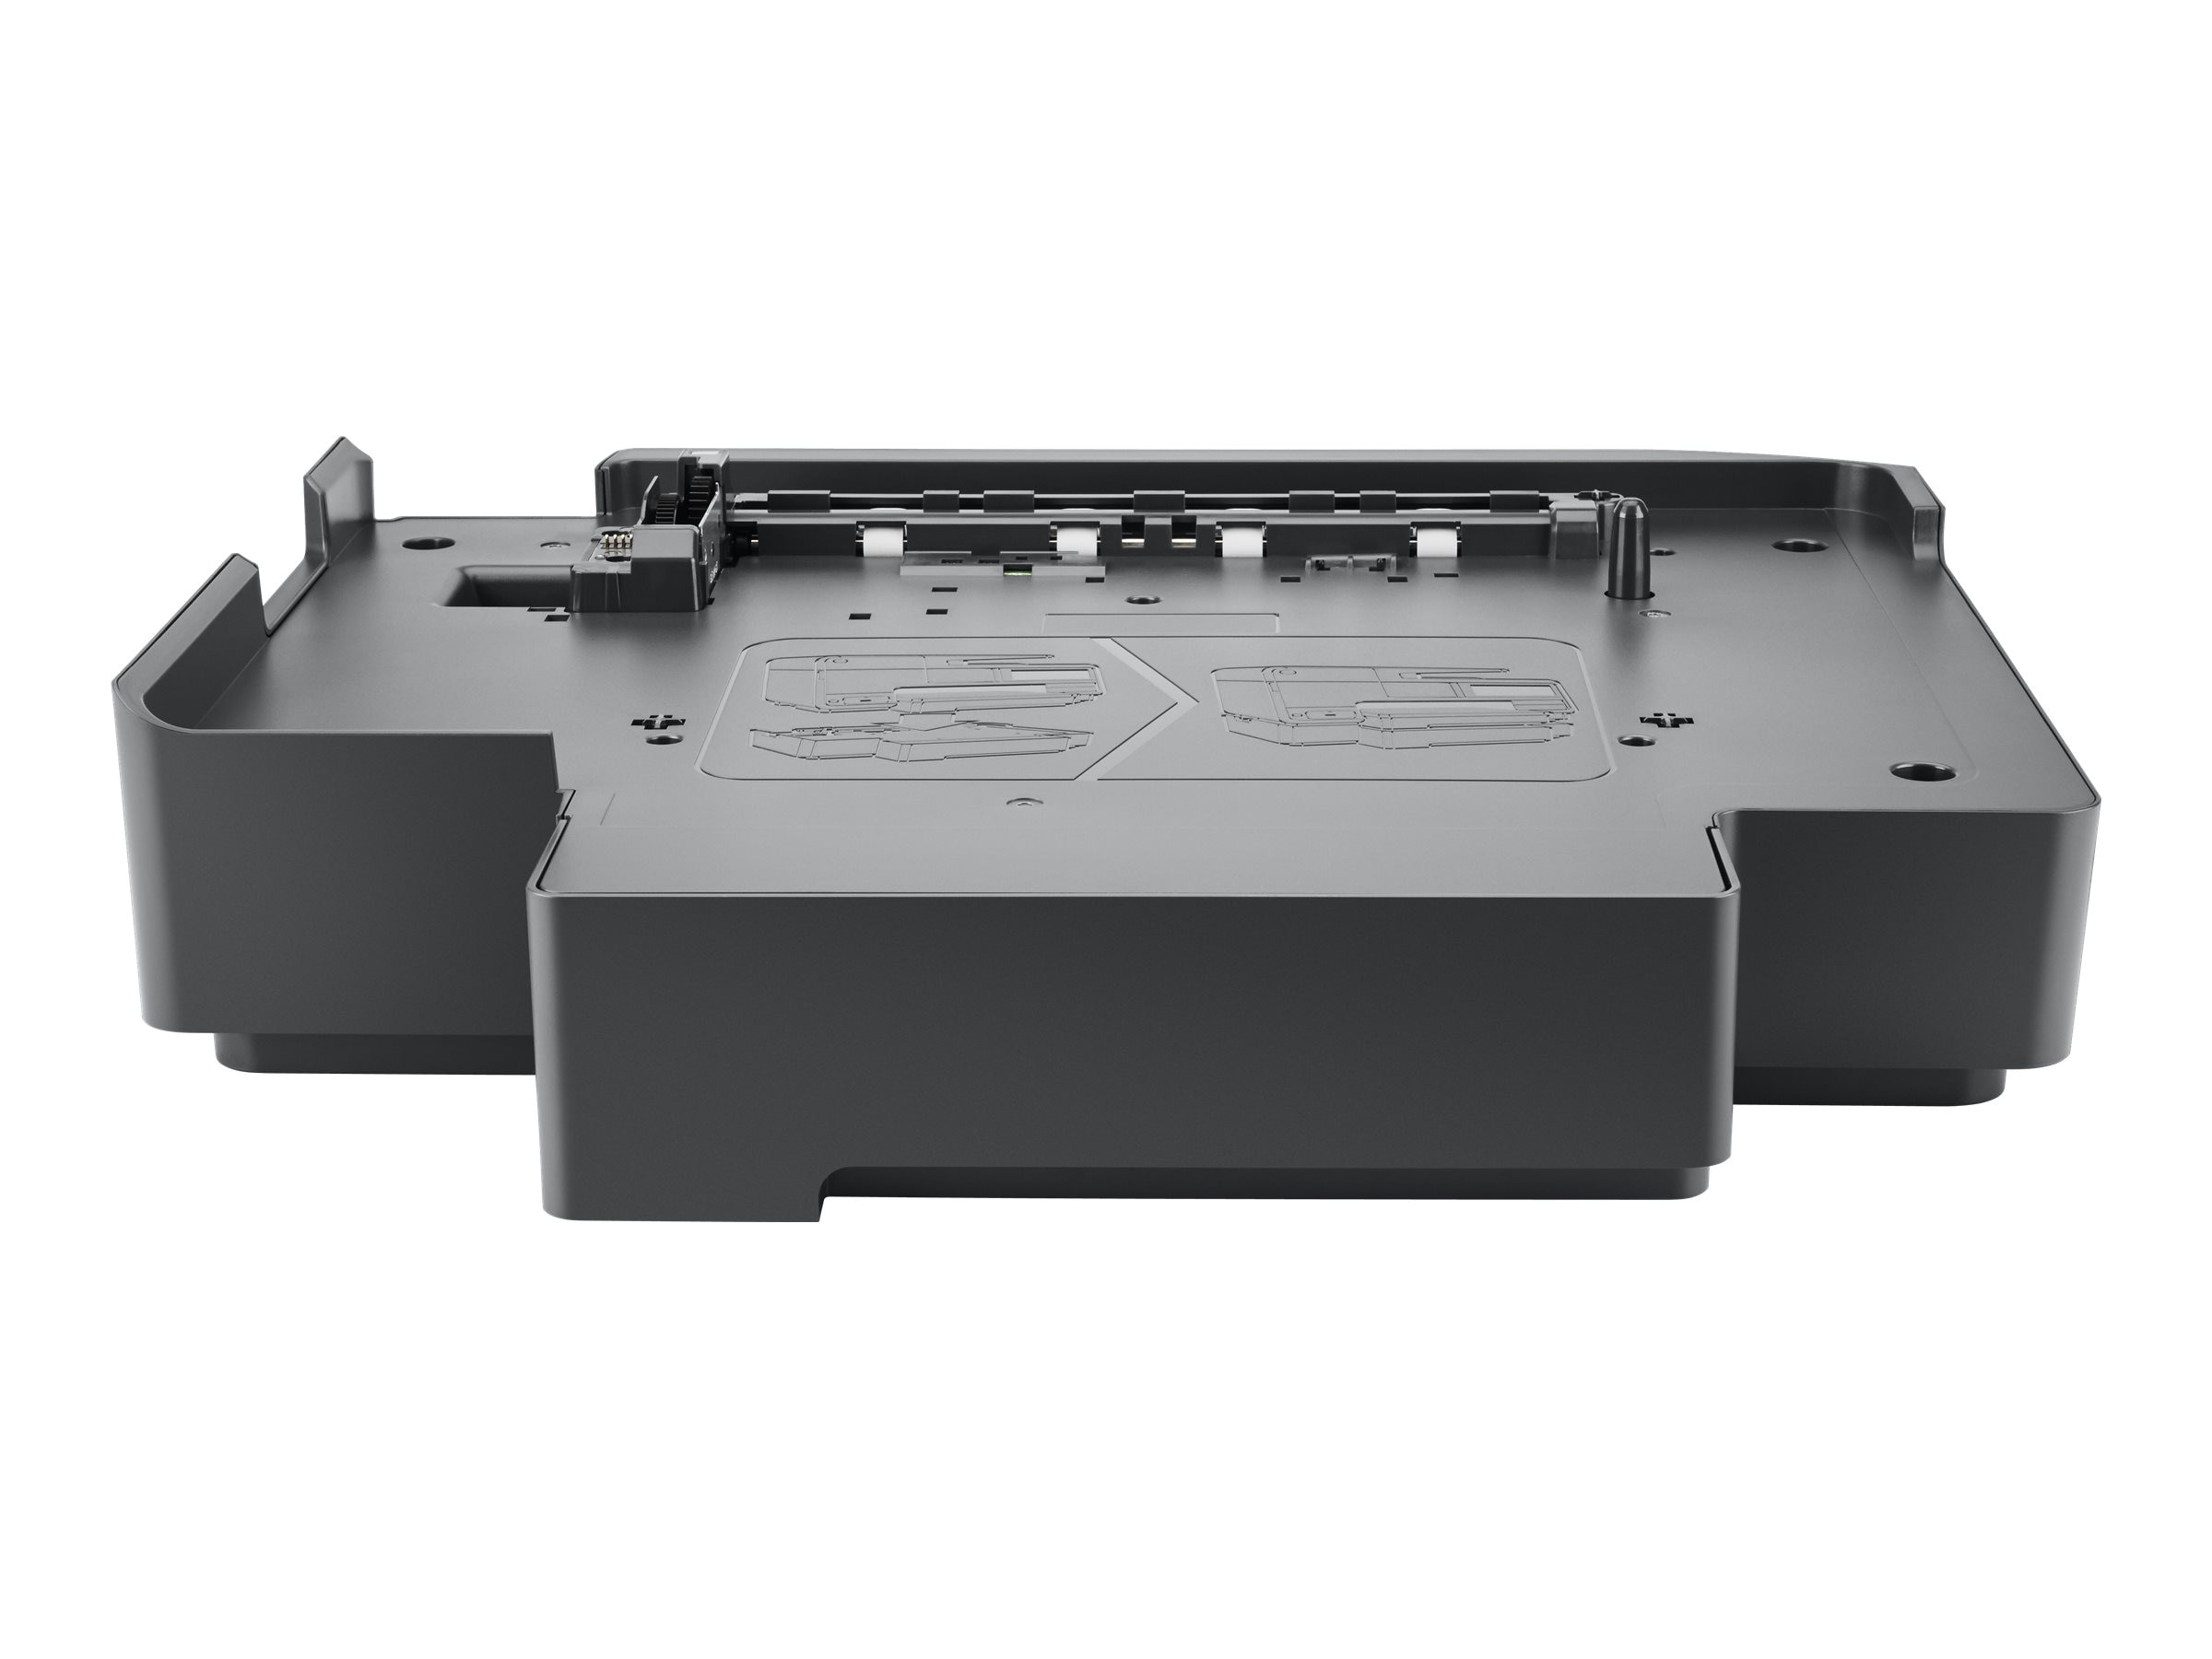 HP 250-Sheet Paper Tray for HP Officejet Pro 8610 & 8620 e-All-One Printers, A8Z70A, 17411586, Printers - Input Trays/Feeders